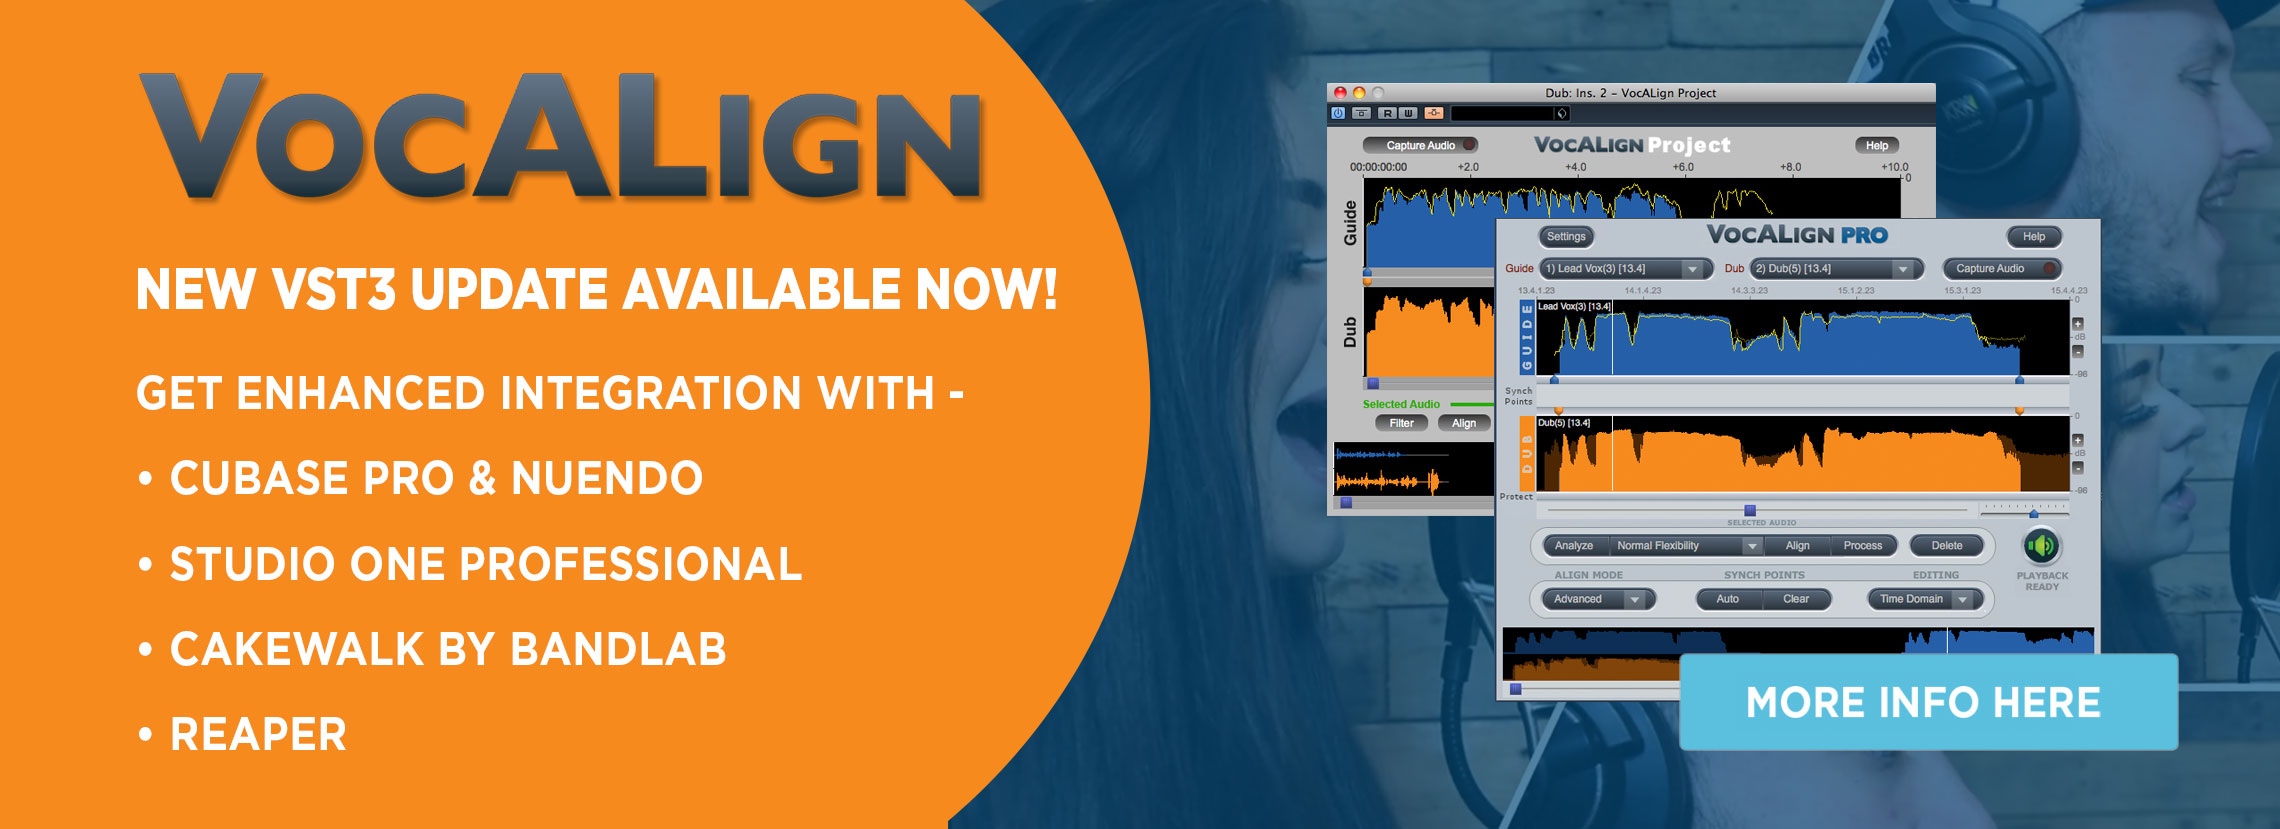 synchro arts vocalign time alignment vocal processing software plugin